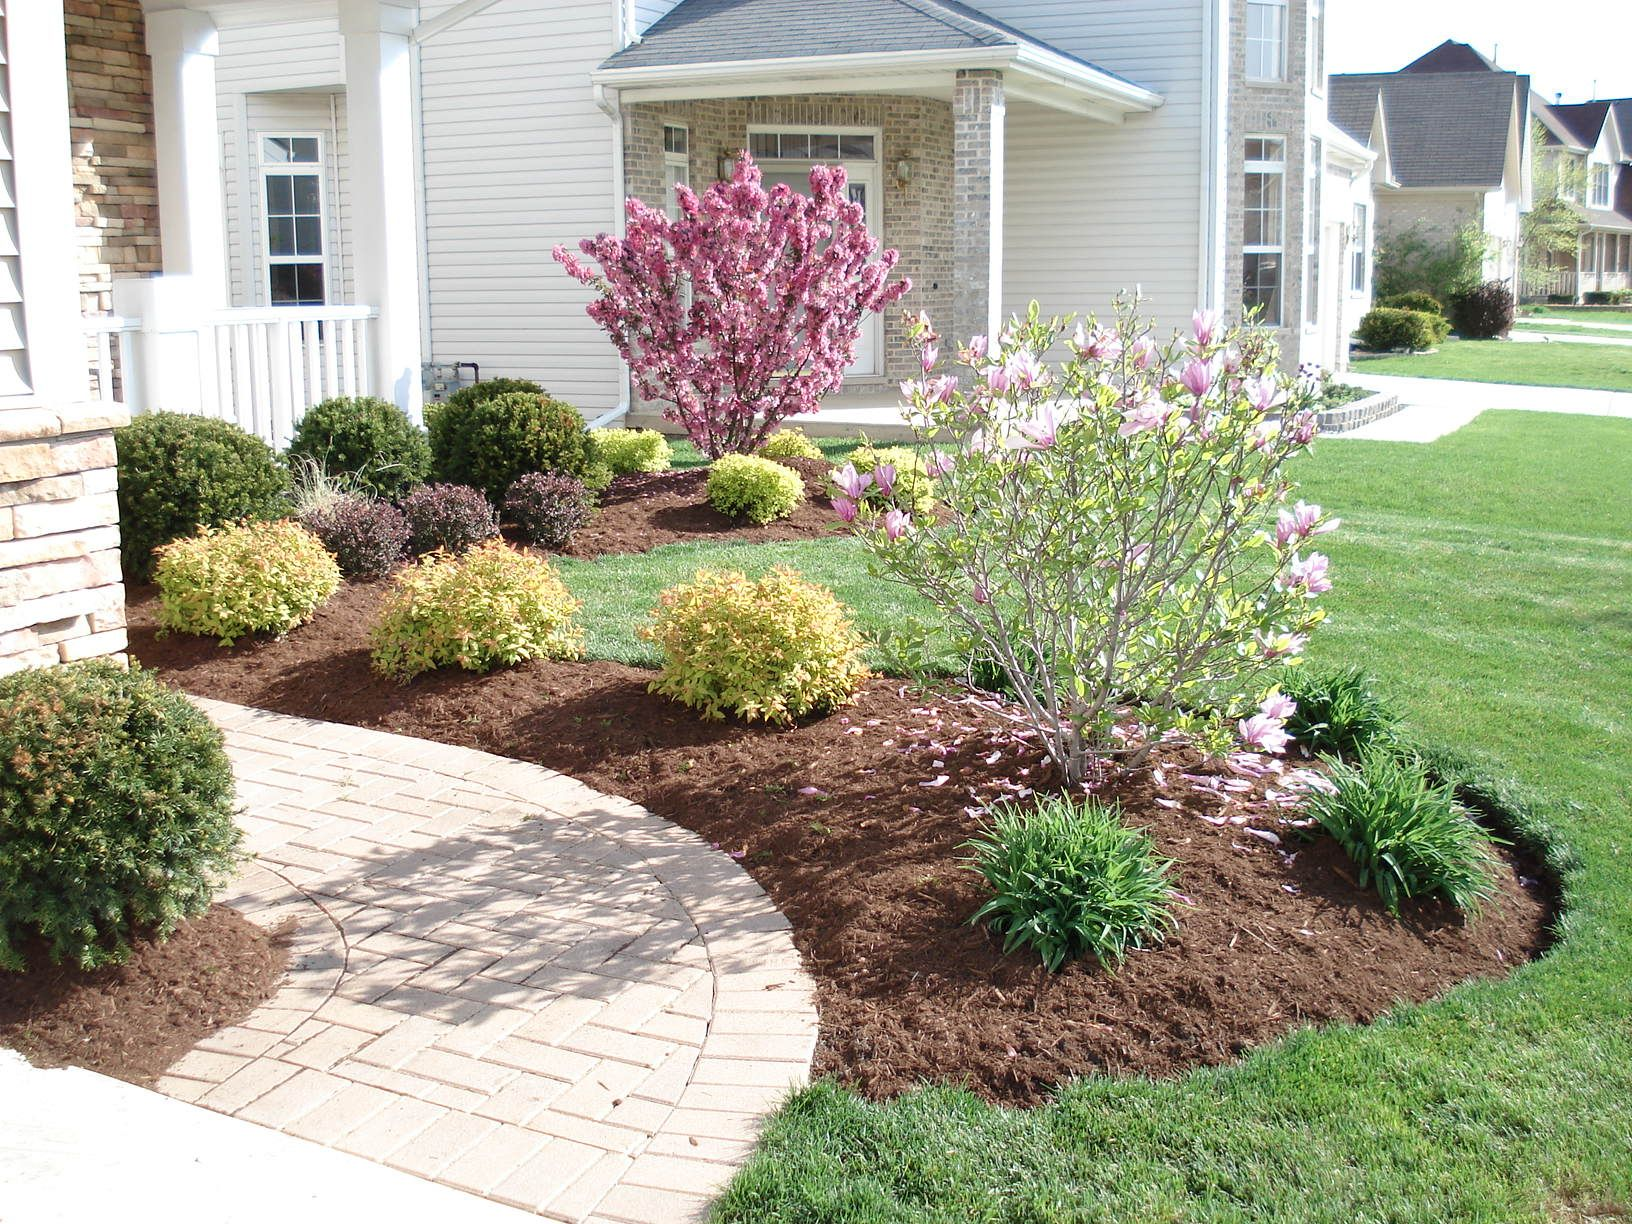 Simple front yard landscaping ideas landscape front yard for Simple front landscape ideas